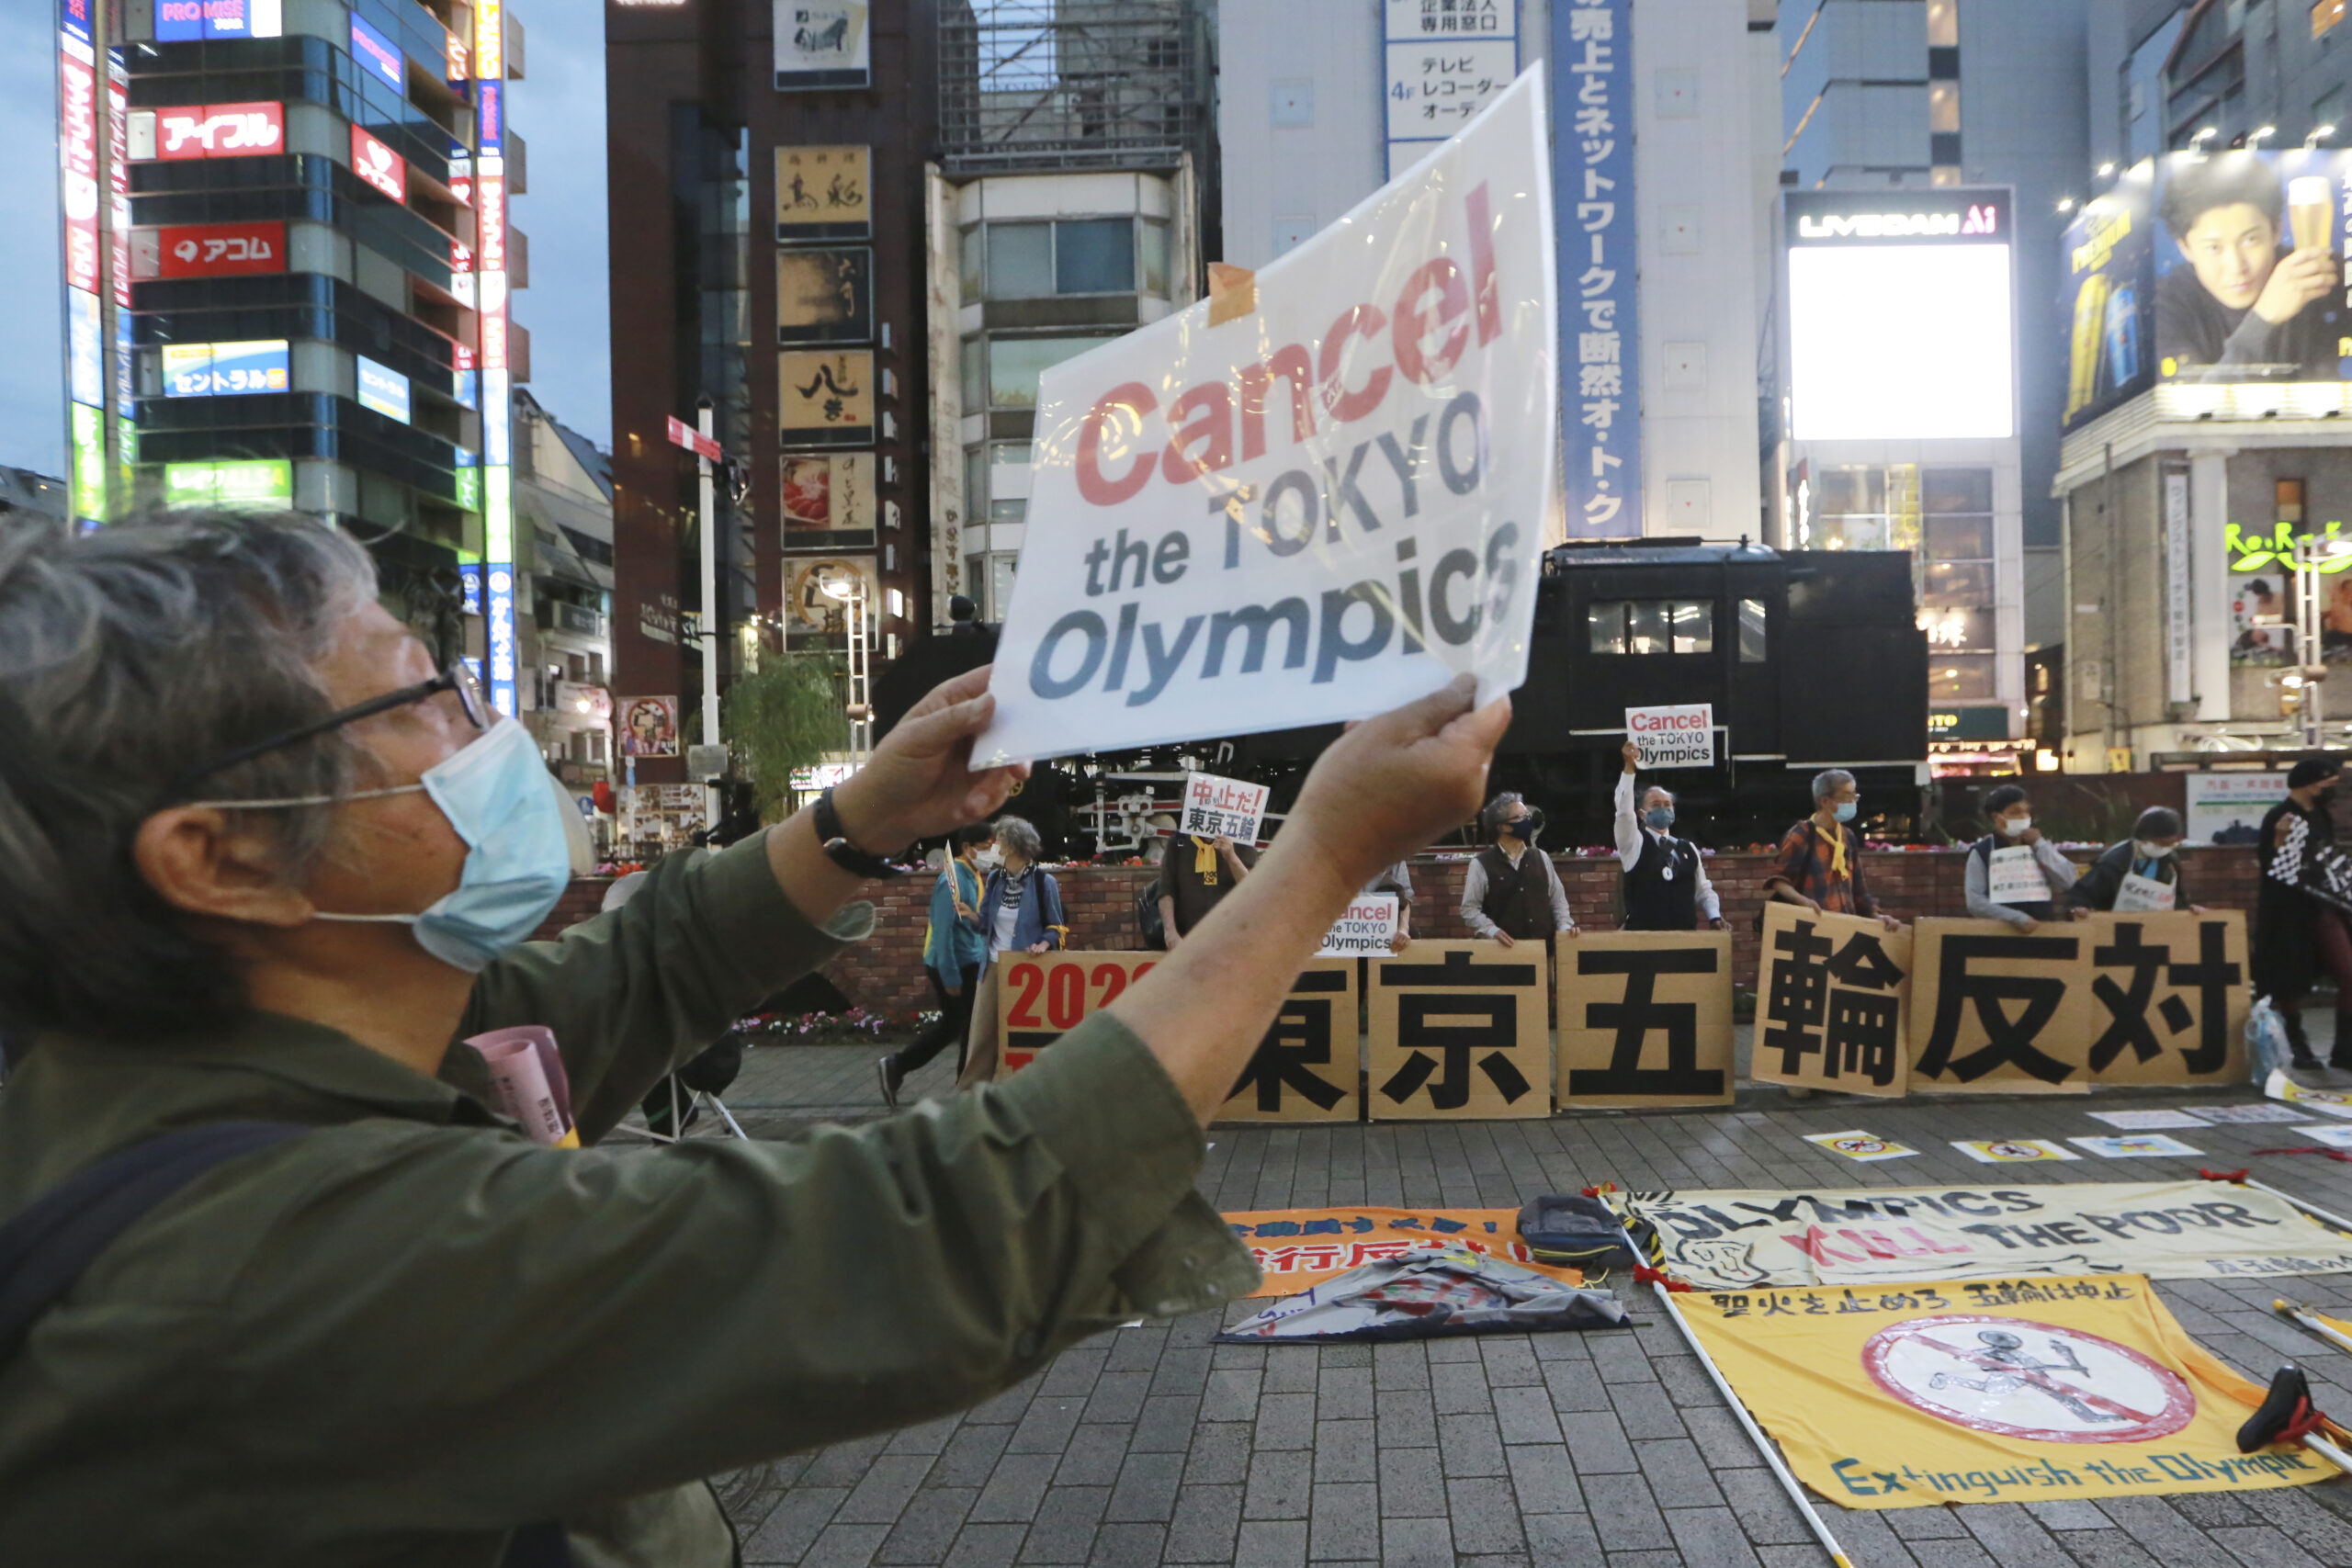 Anger in Tokyo over the Summer Olympics is just the latest example of how unpopular hosting the games has become